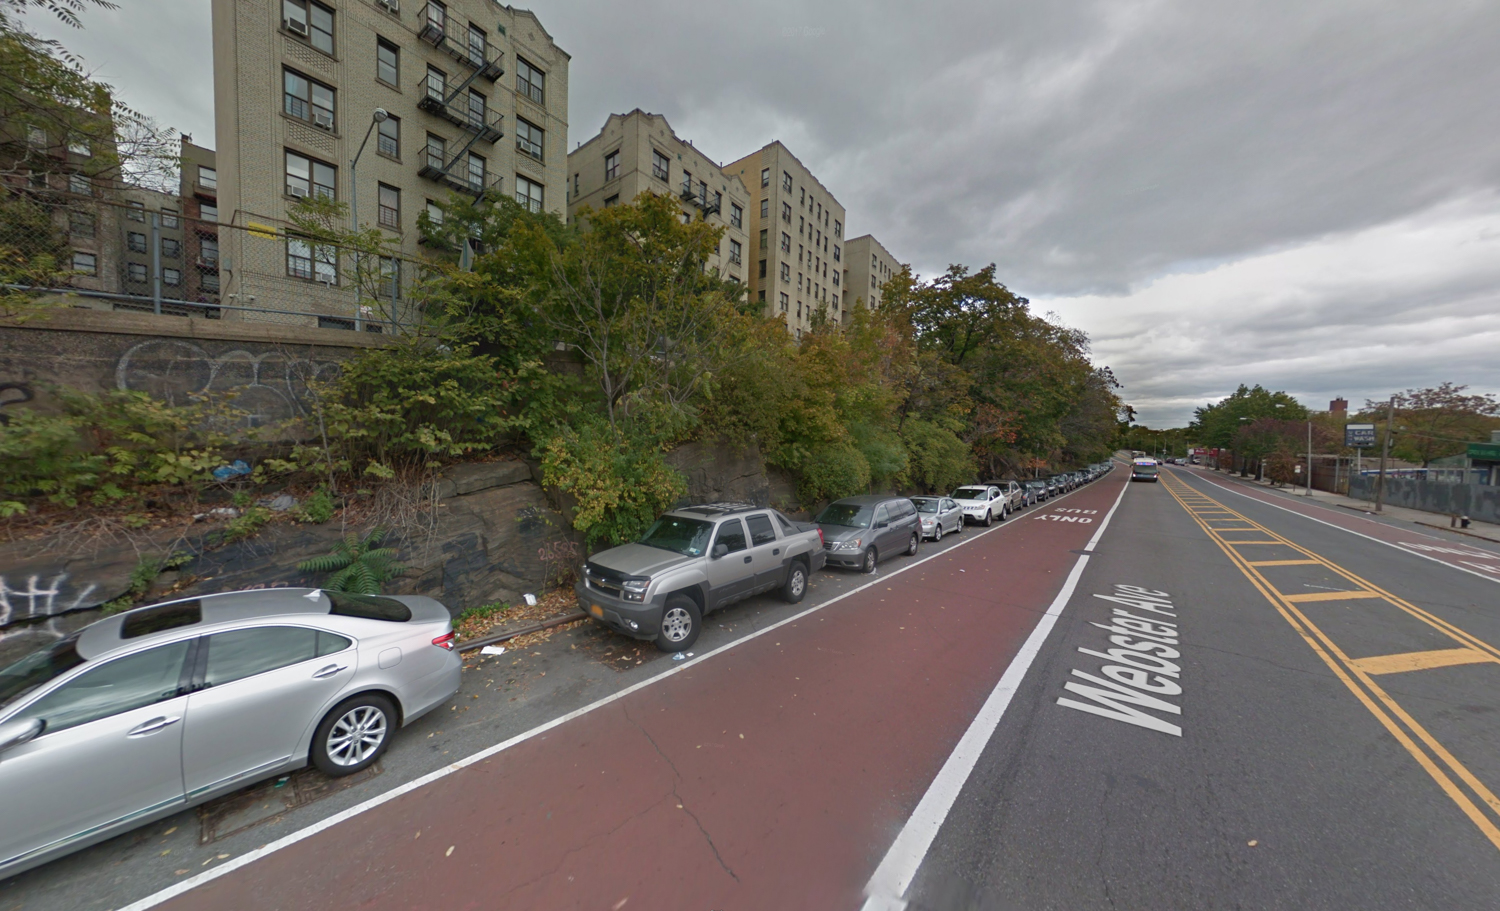 3254, 3258 Parkside Place, via Google Maps